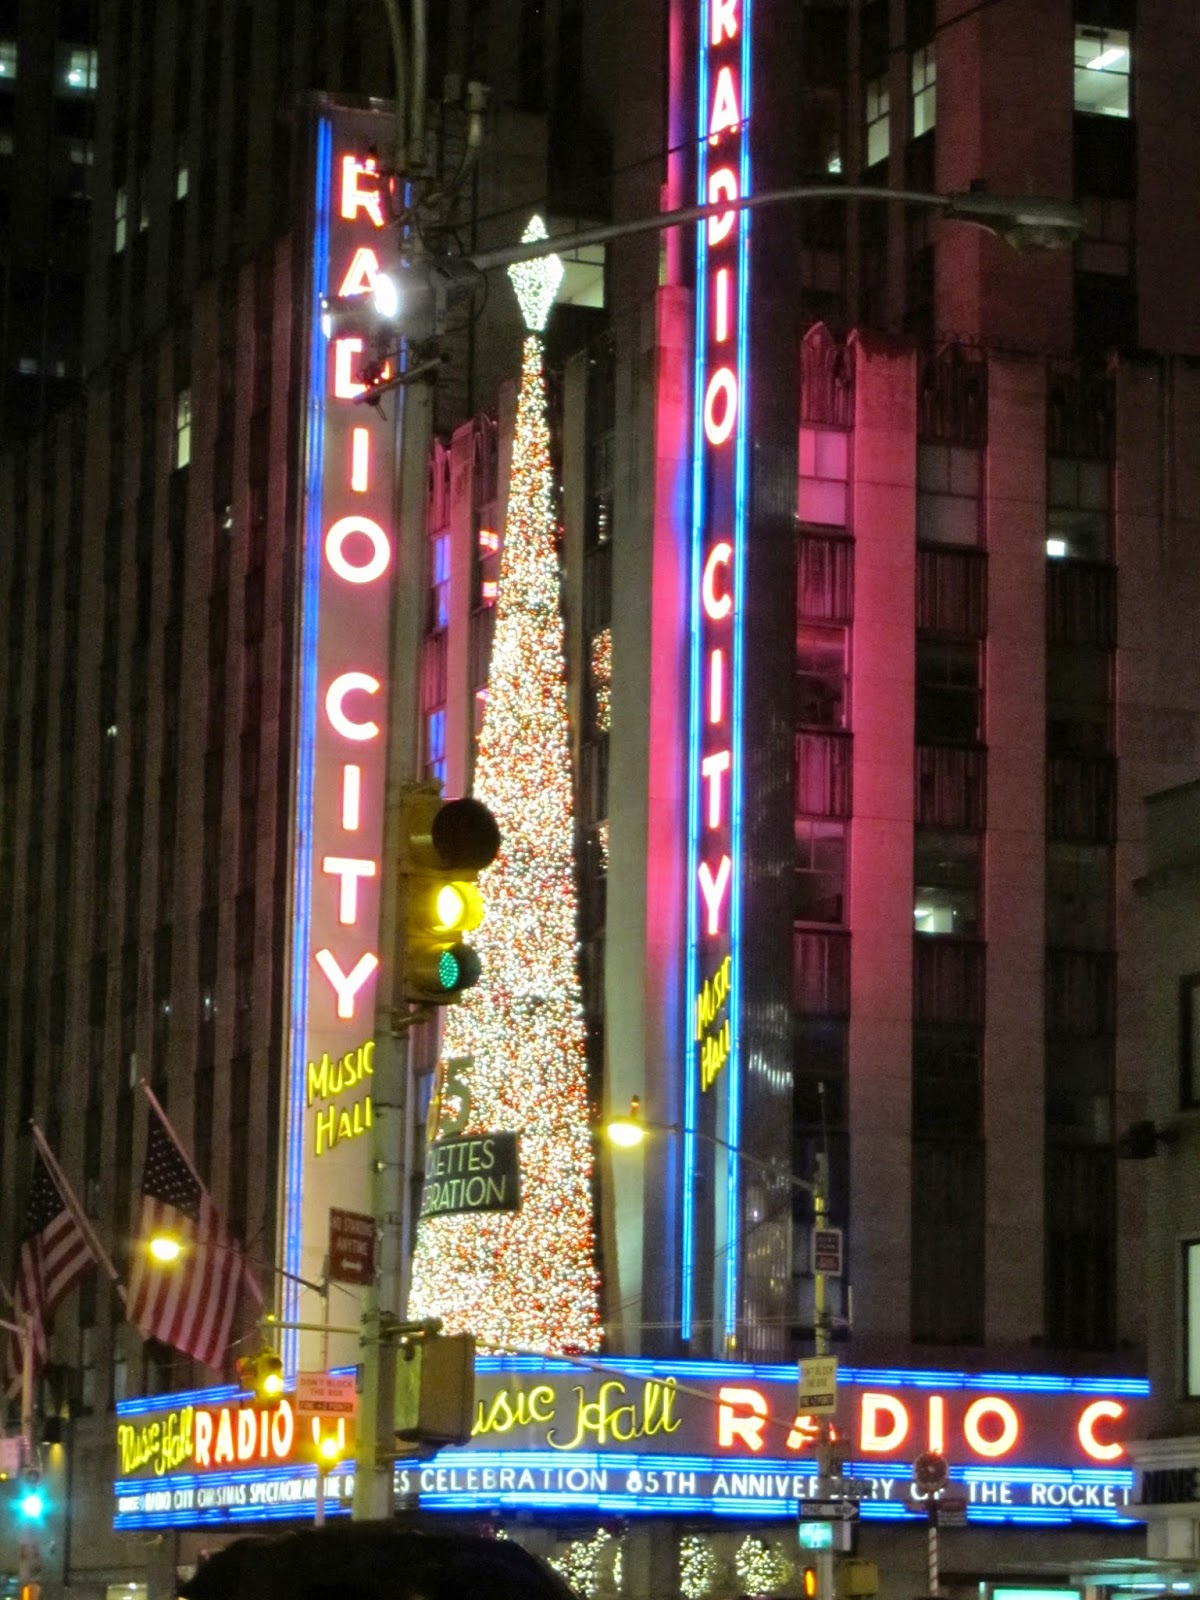 NYC Radio City